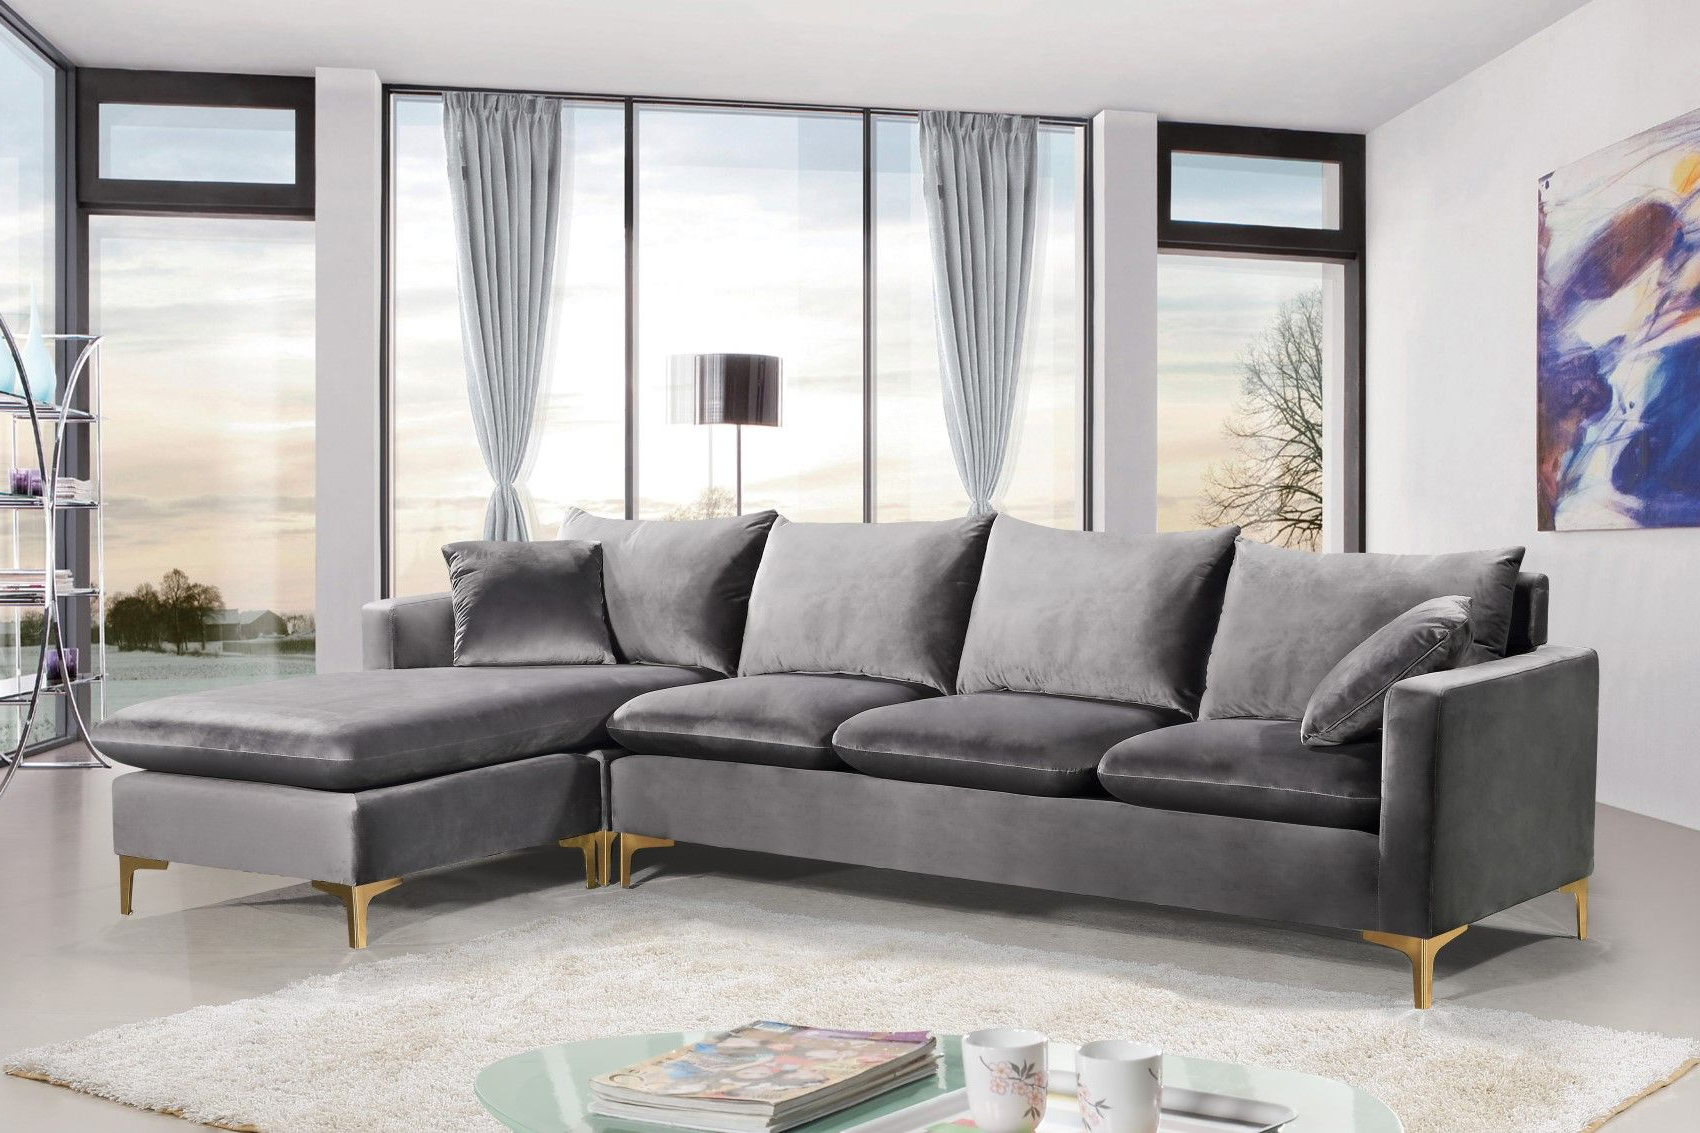 Selene Contemporary Plush Grey Velvet Sectional Sofa With Intended For Newest Noa Sectional Sofas With Ottoman Gray (View 16 of 25)